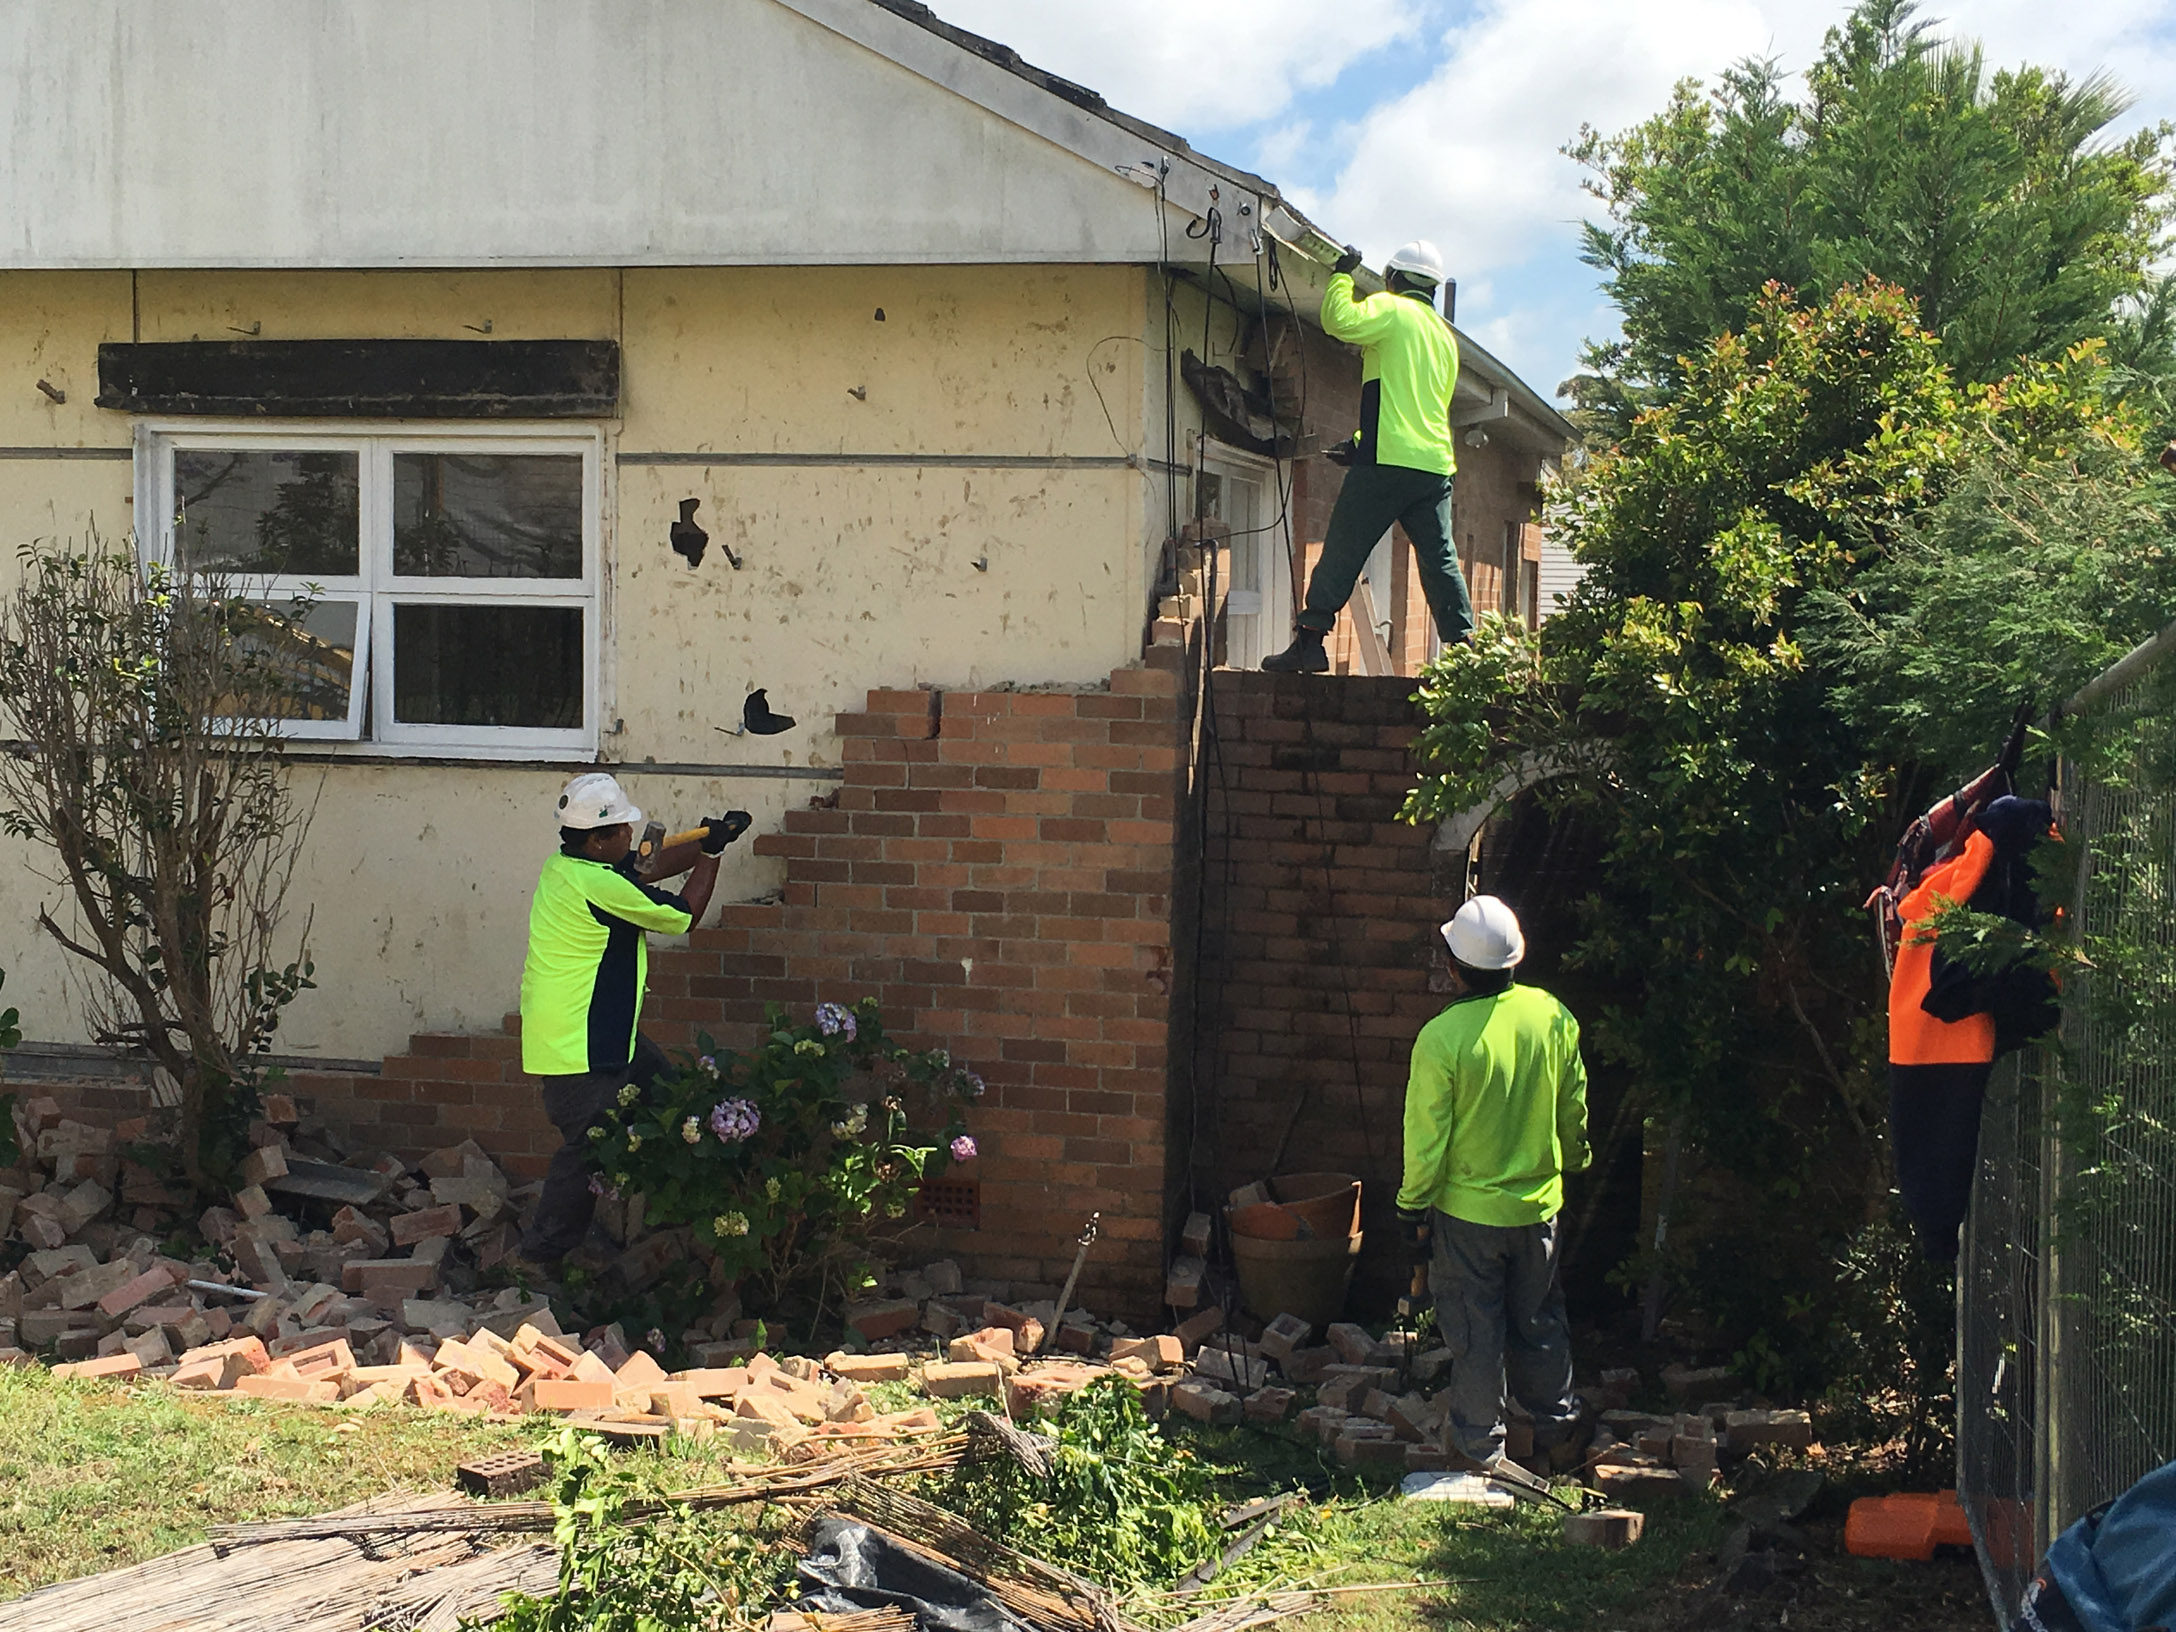 This asbestos clad fibro home had a brick facade making for a particuarly time consuming asbestos removal job.